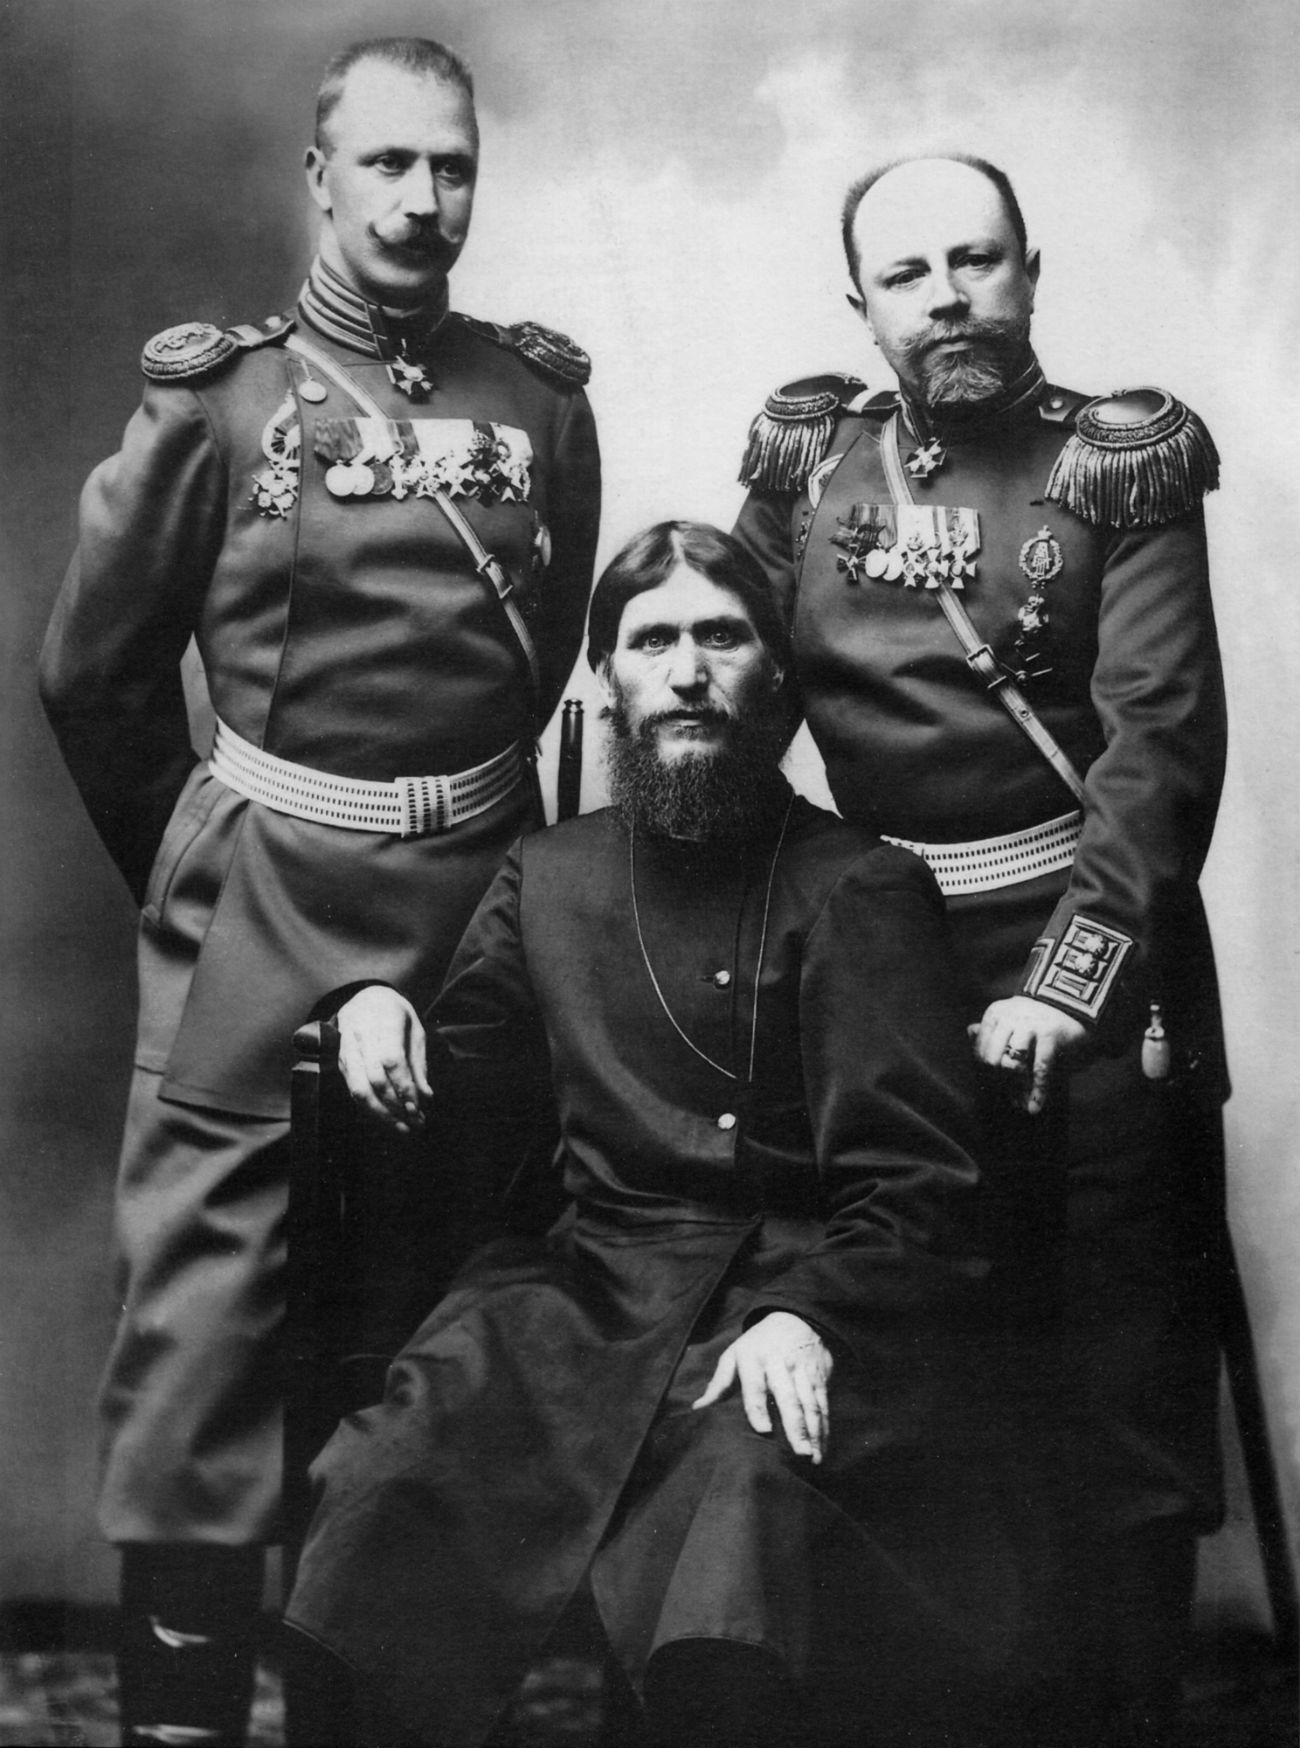 He was also the official photographer of many state organizations, including the Interior Ministry, the Navy and Army Ministries, and the State Duma. // L-R: Colonel Loman, Grigory Rasputin, General Putyatin